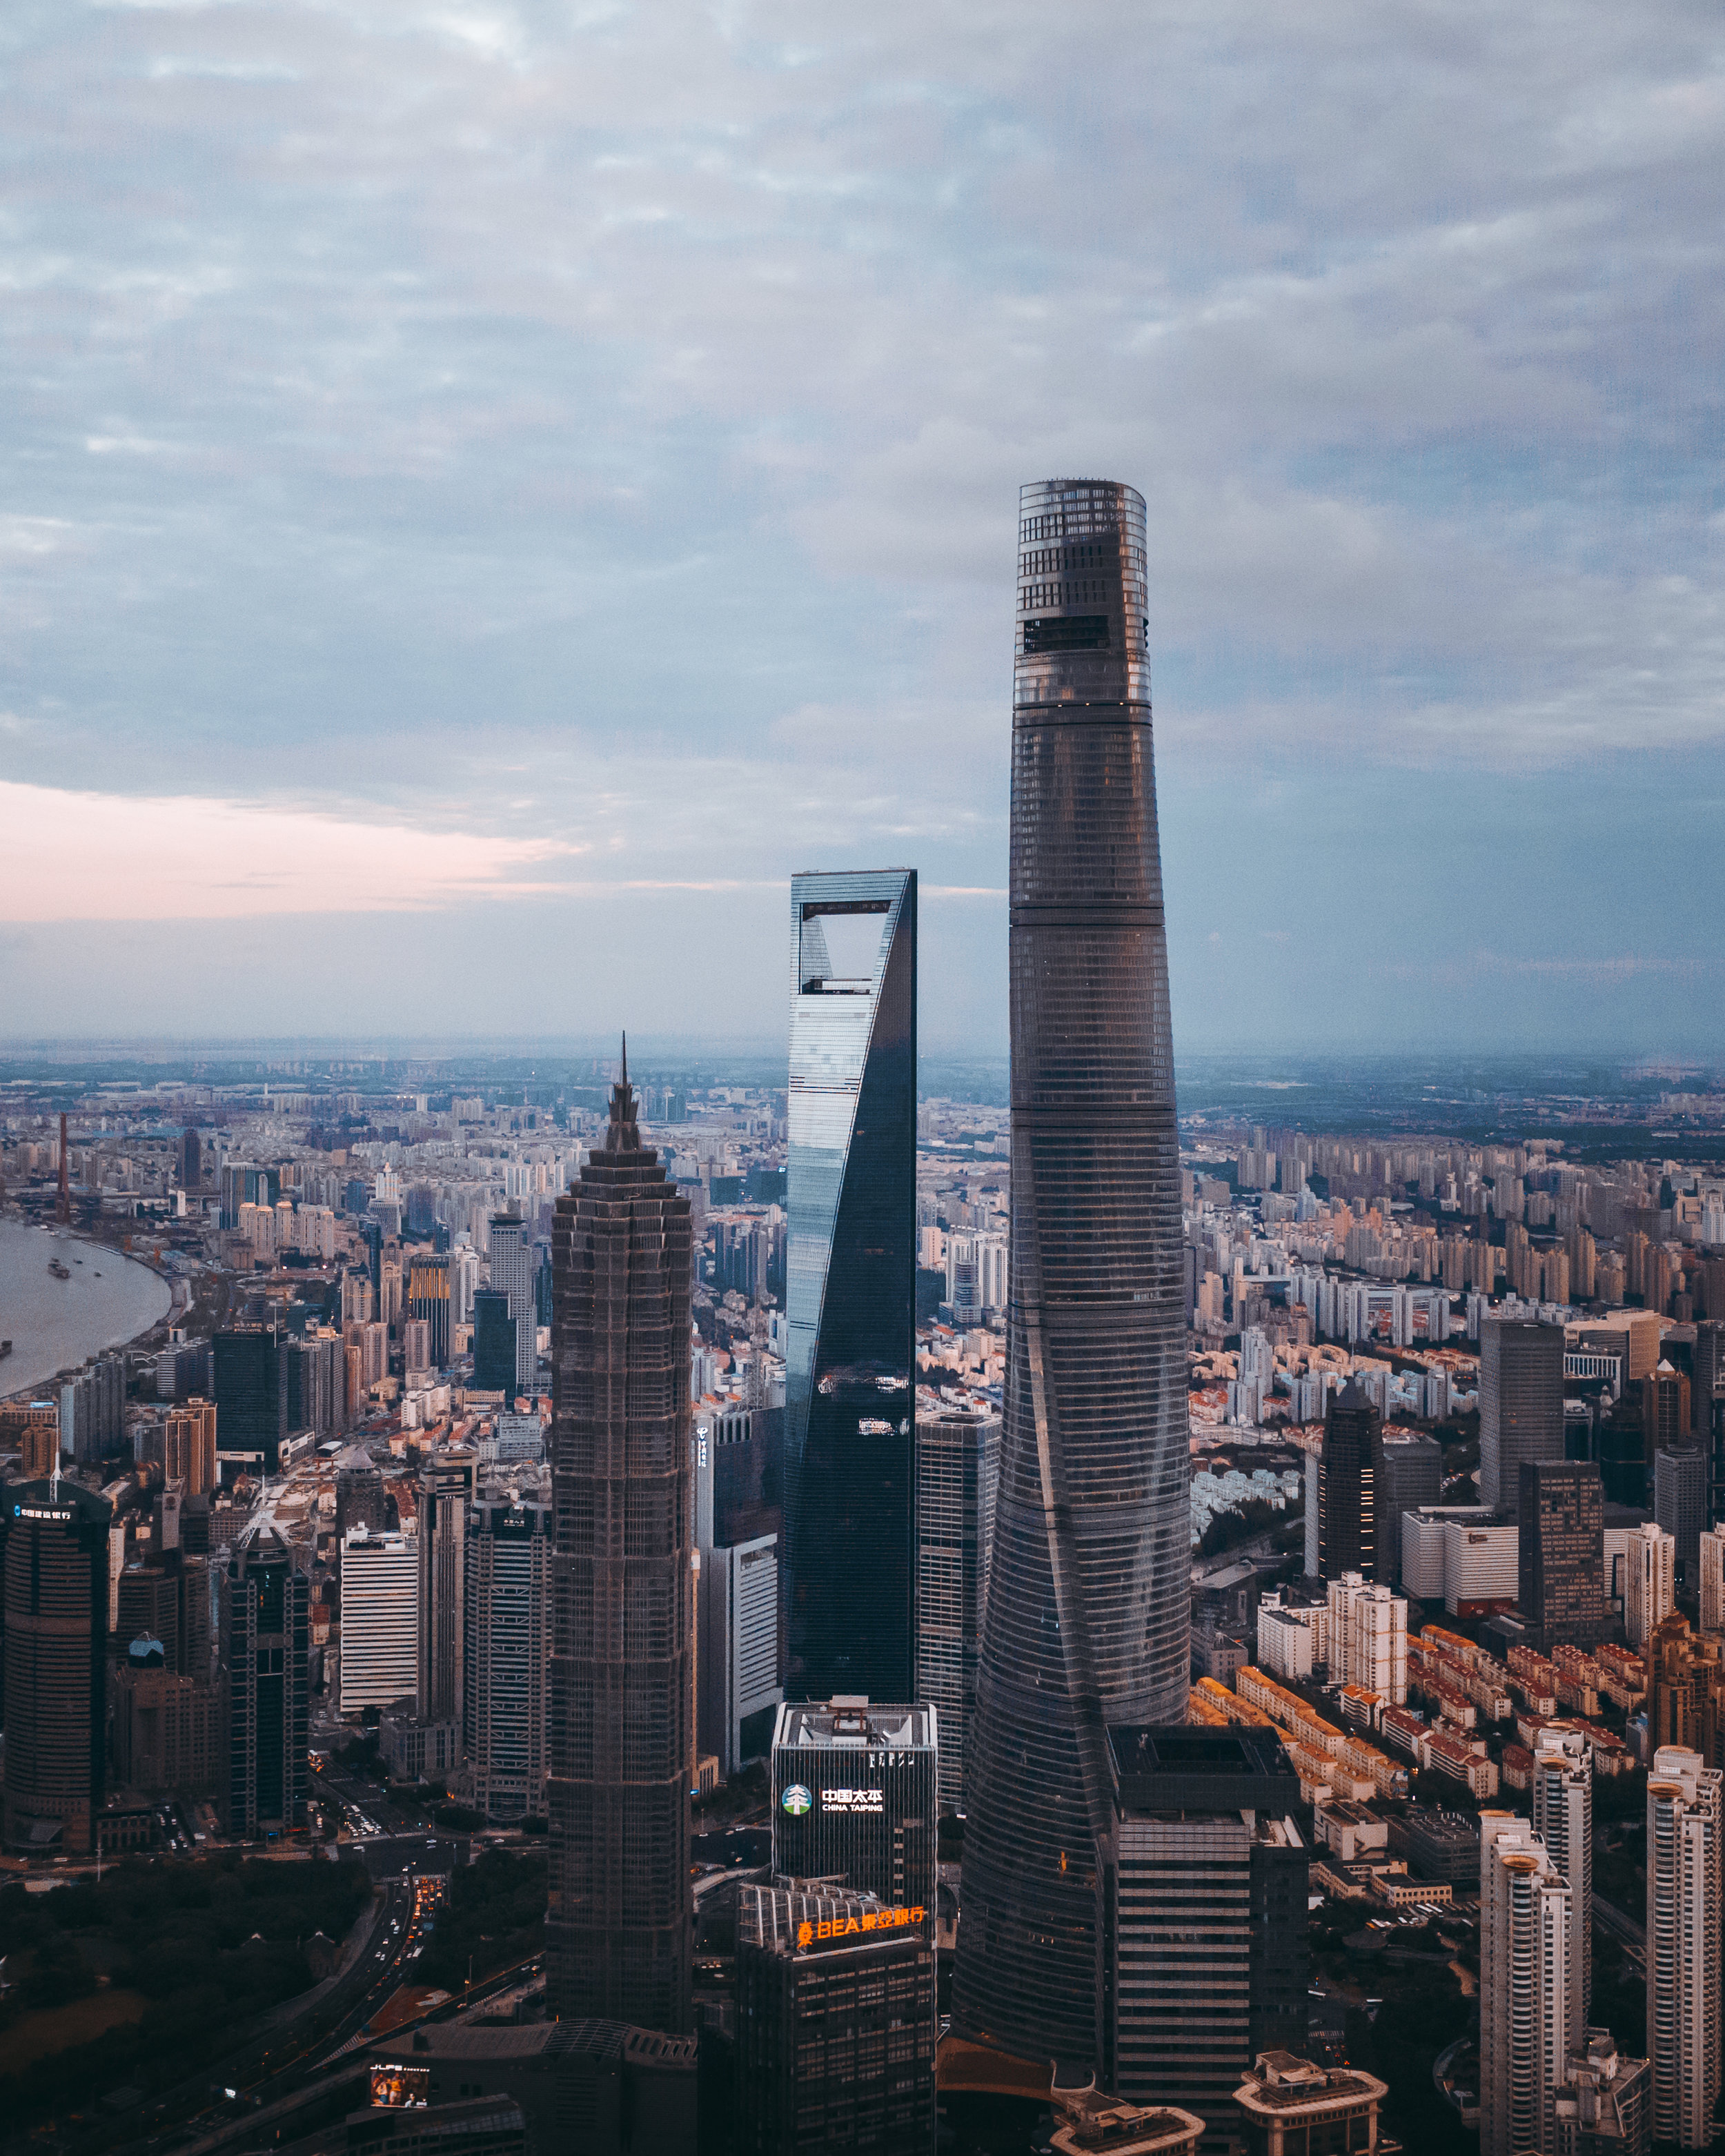 Designing a Souvenir for the Highest Building in Shanghai